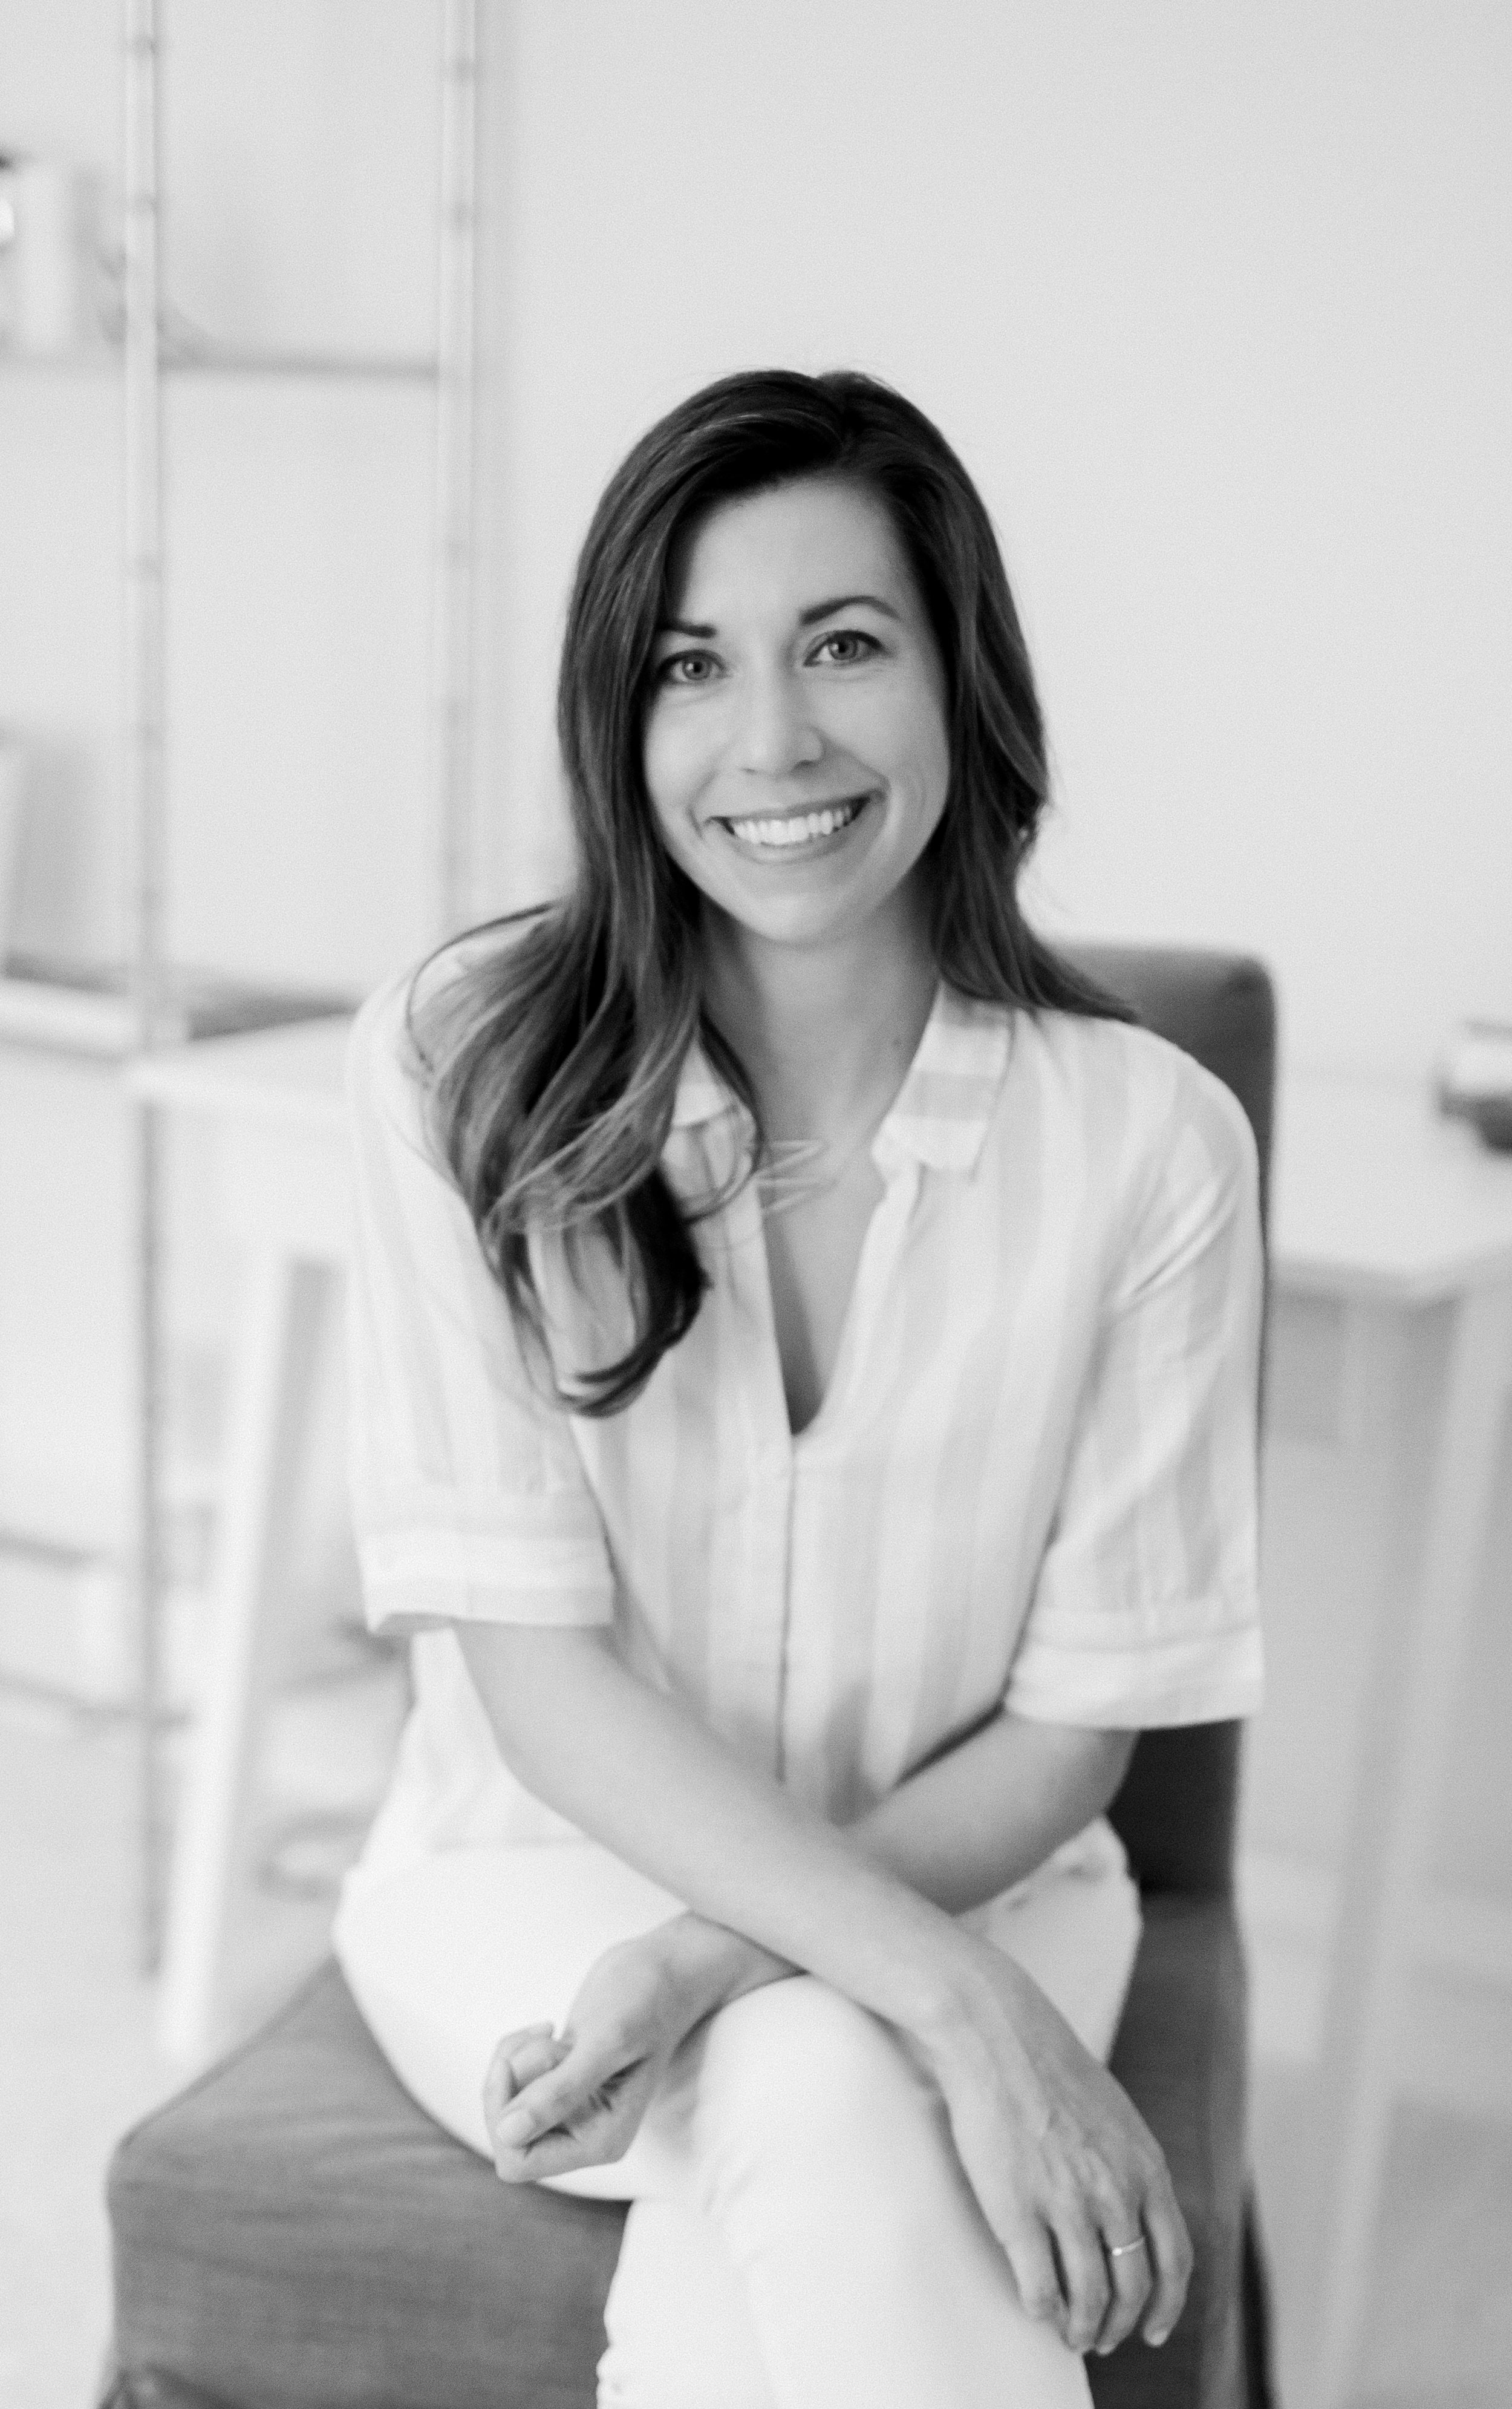 Molly: Founder, Maison Pur